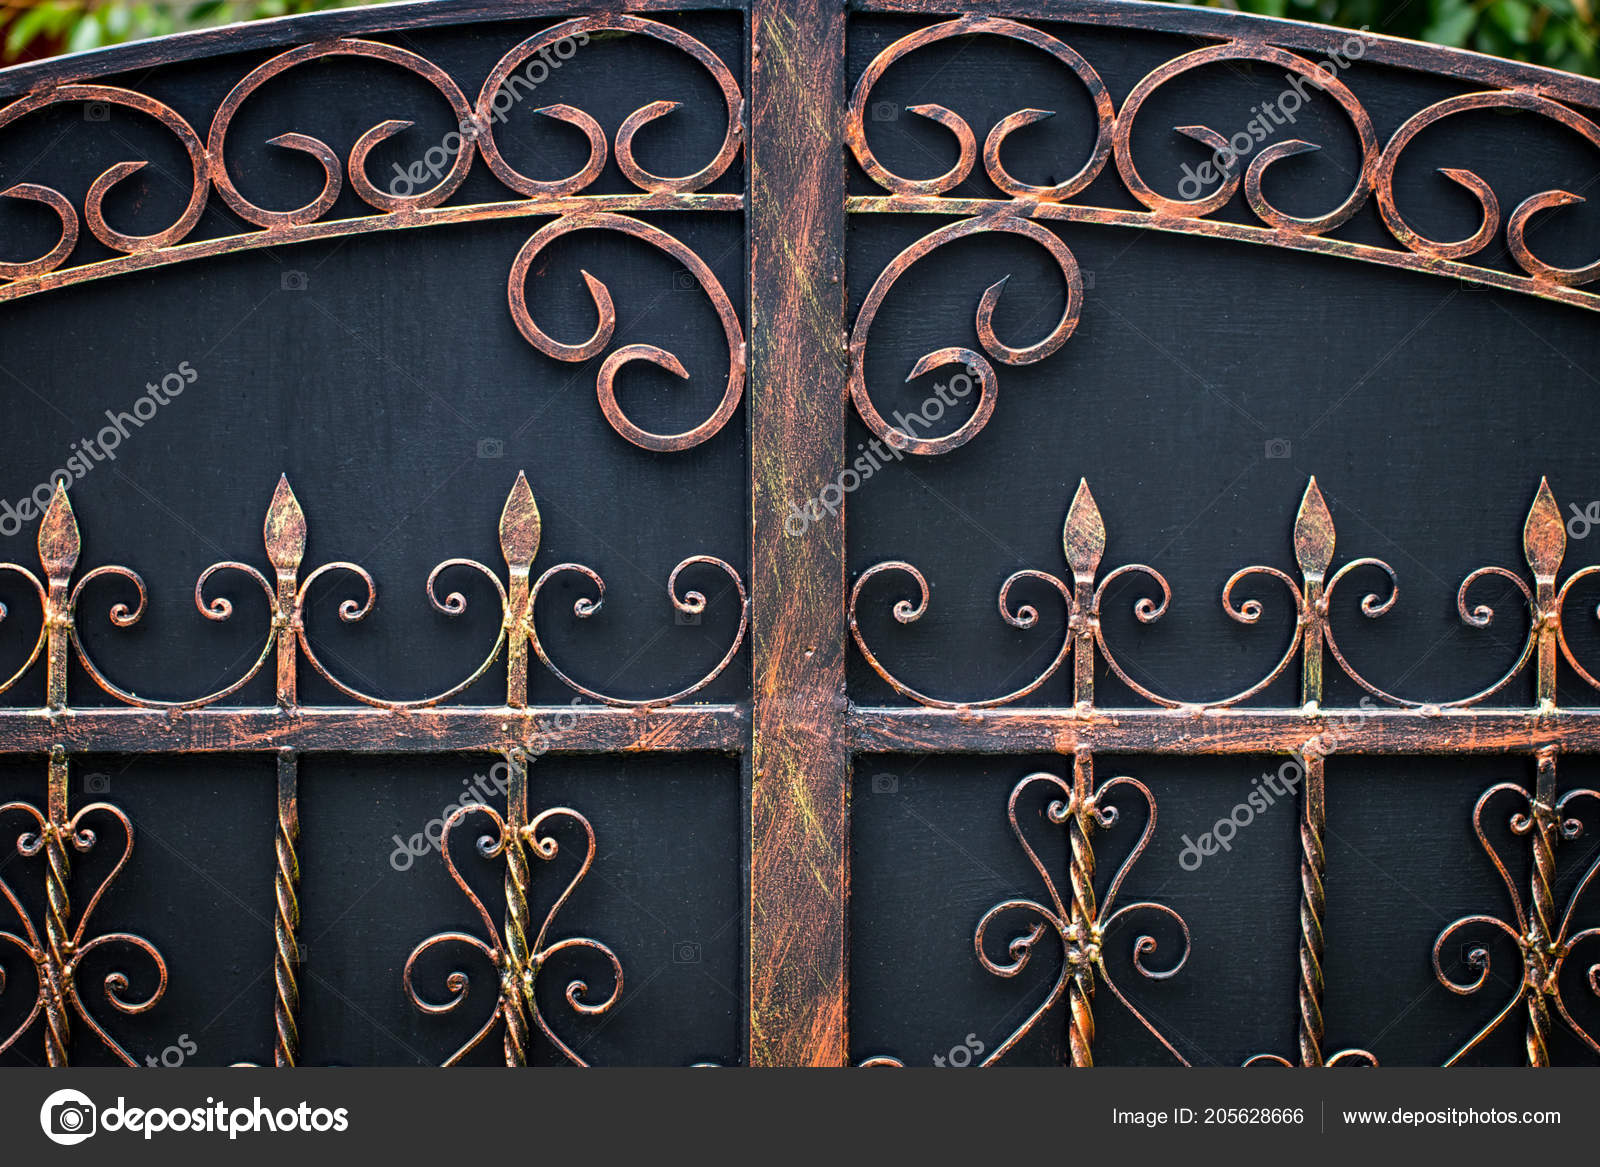 ornate wrought iron gate cast iron ornate wrought iron elements metal gate decoration stock photo